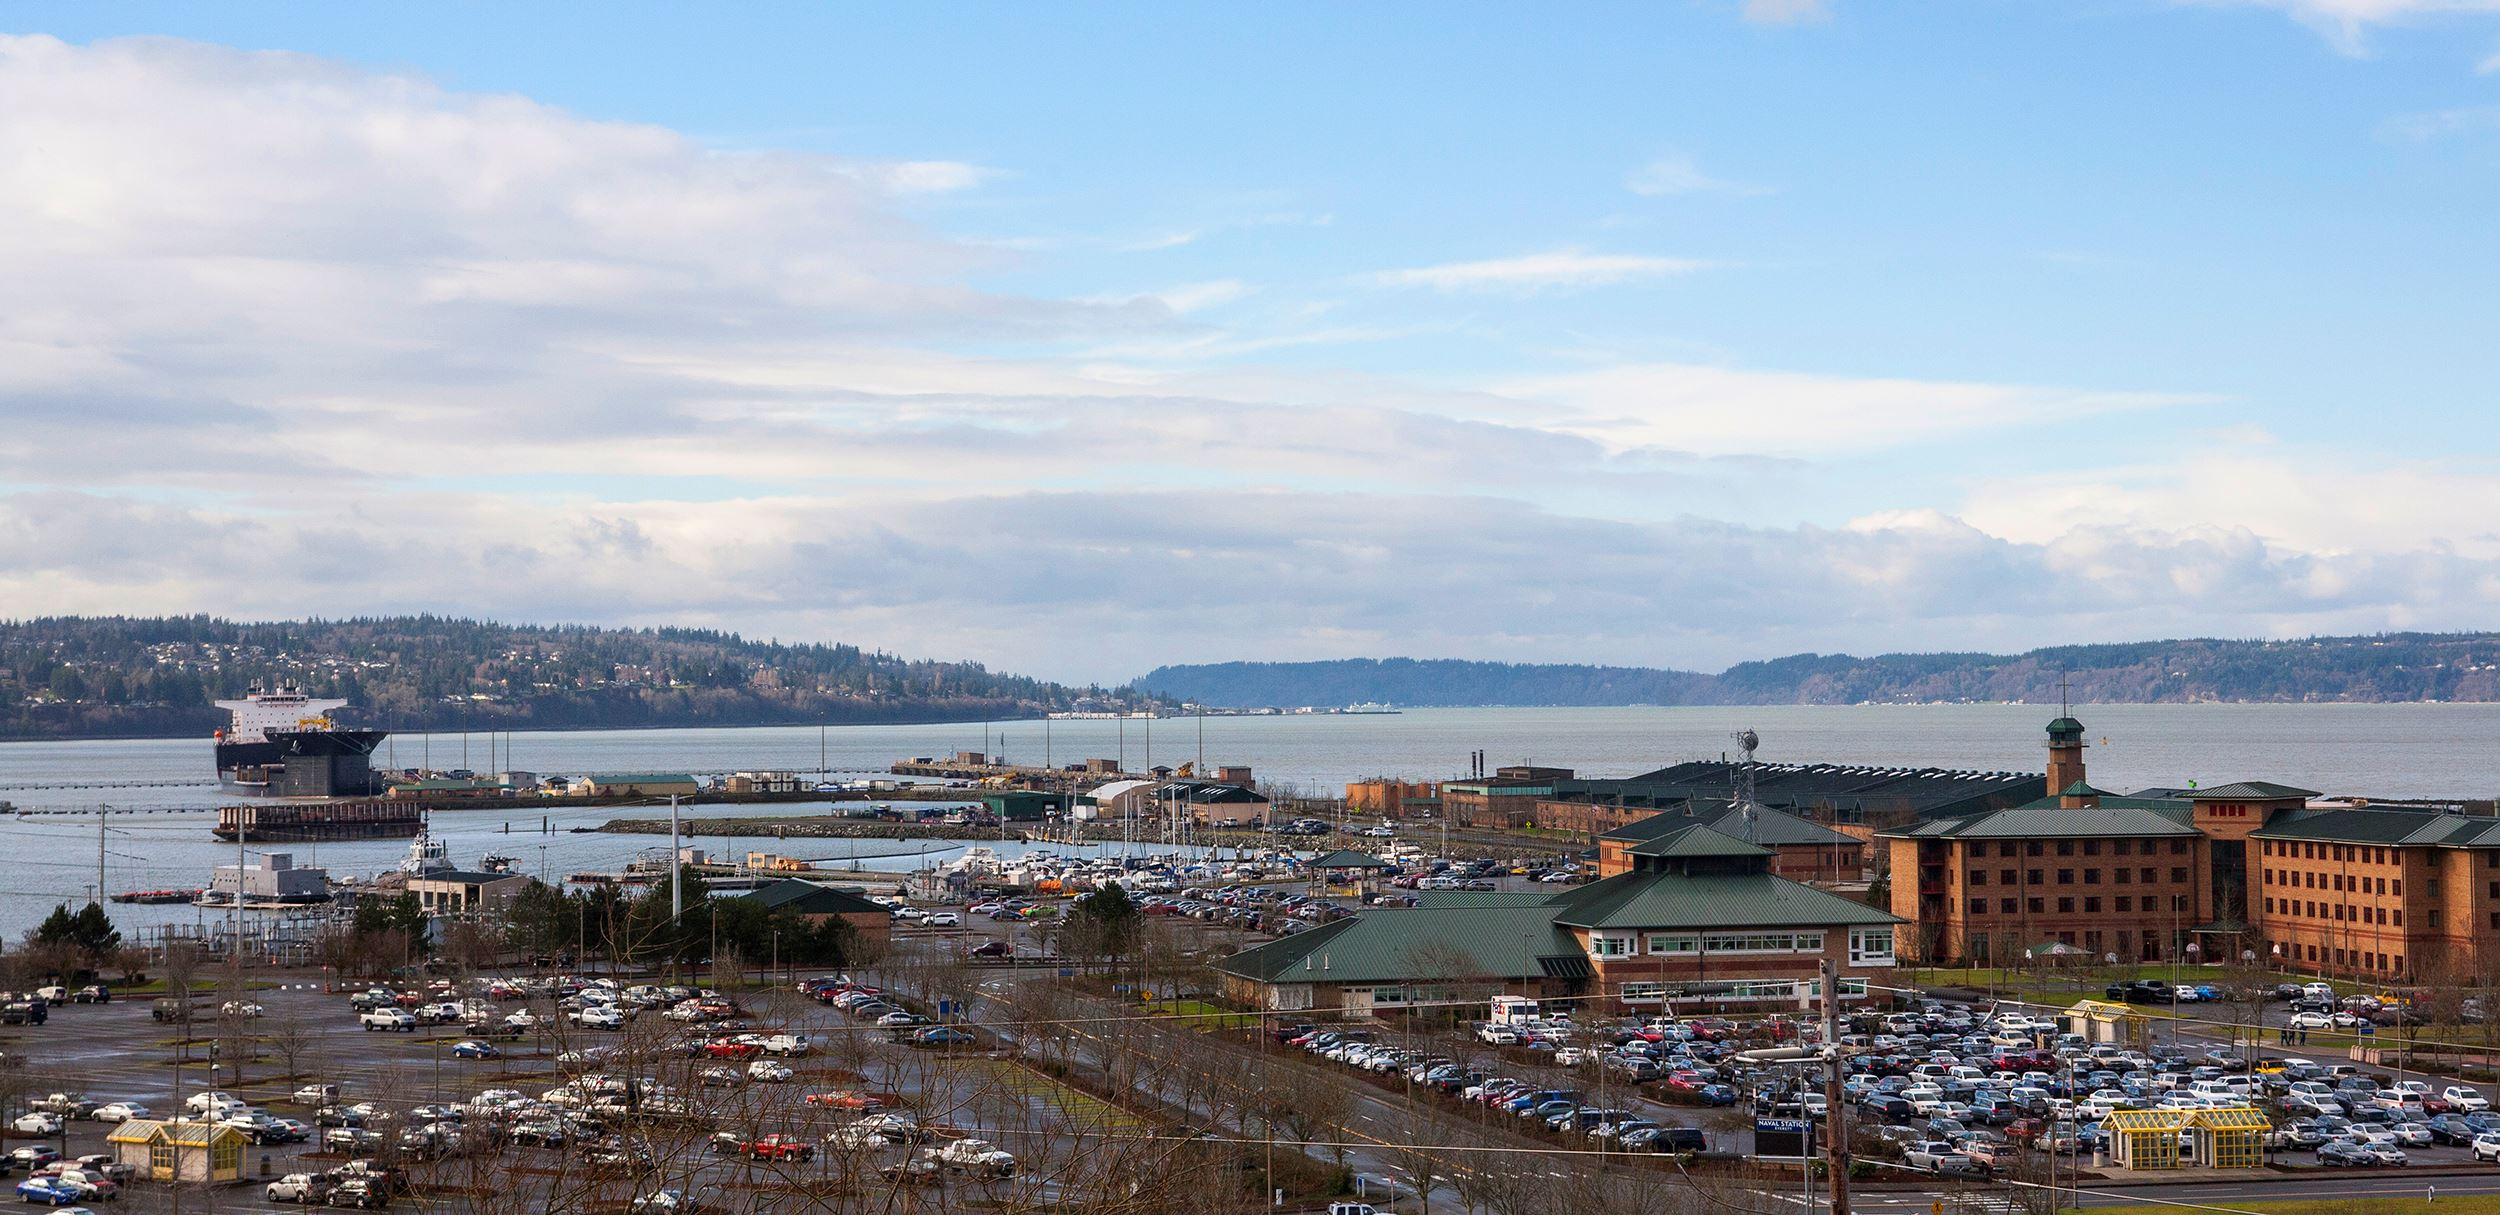 Everett Grand Ave. View of Navy and Port